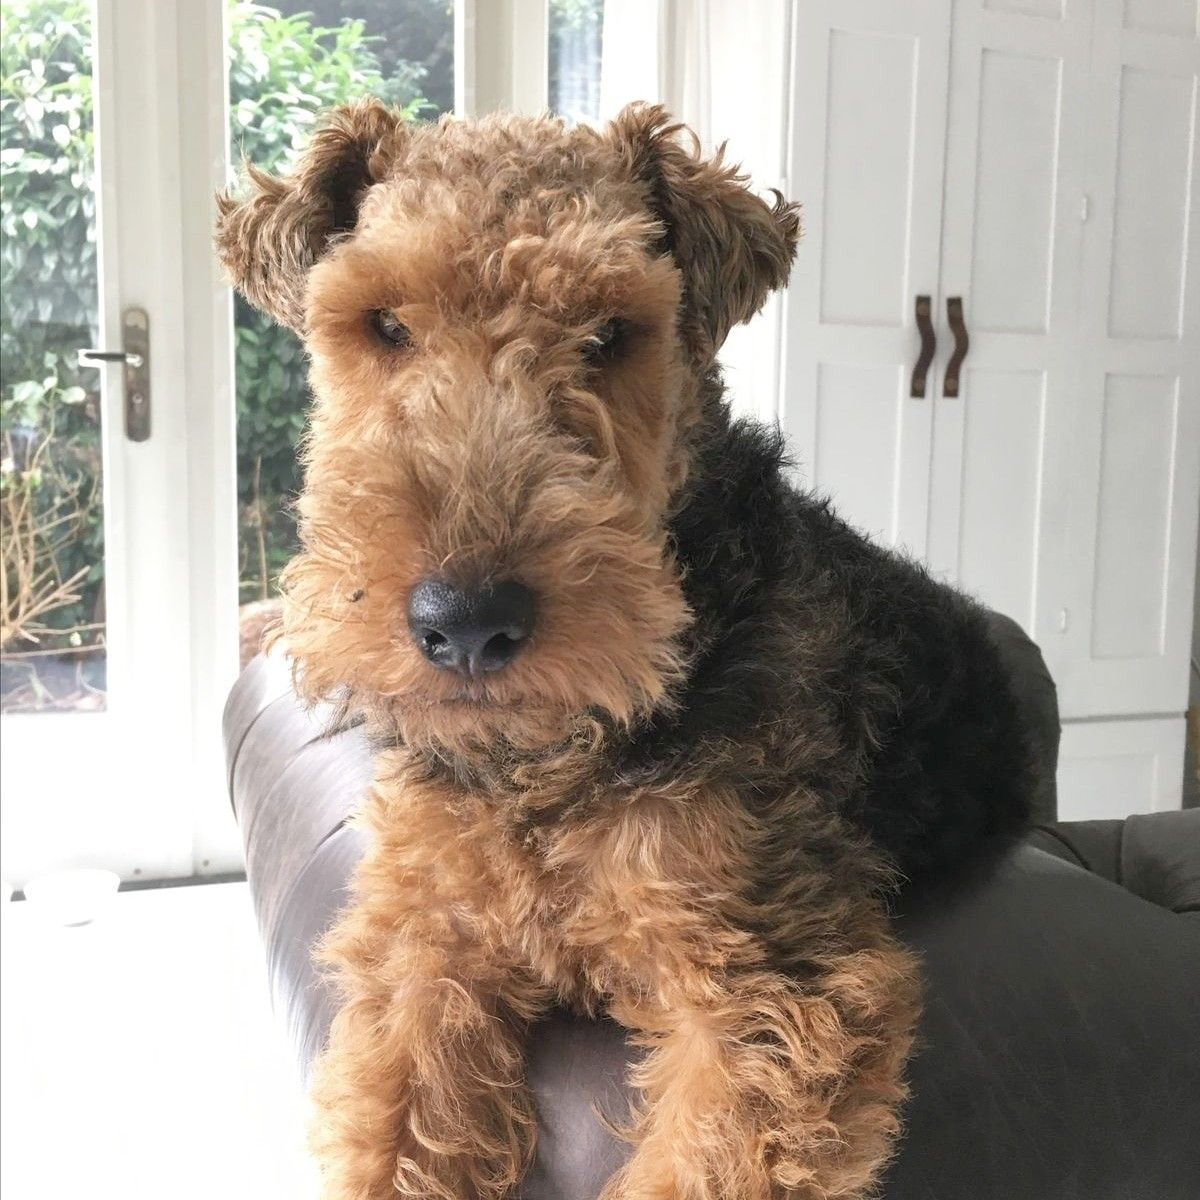 Pin By Kevlar On Dog Airedale Dogs Dogs Family Dogs